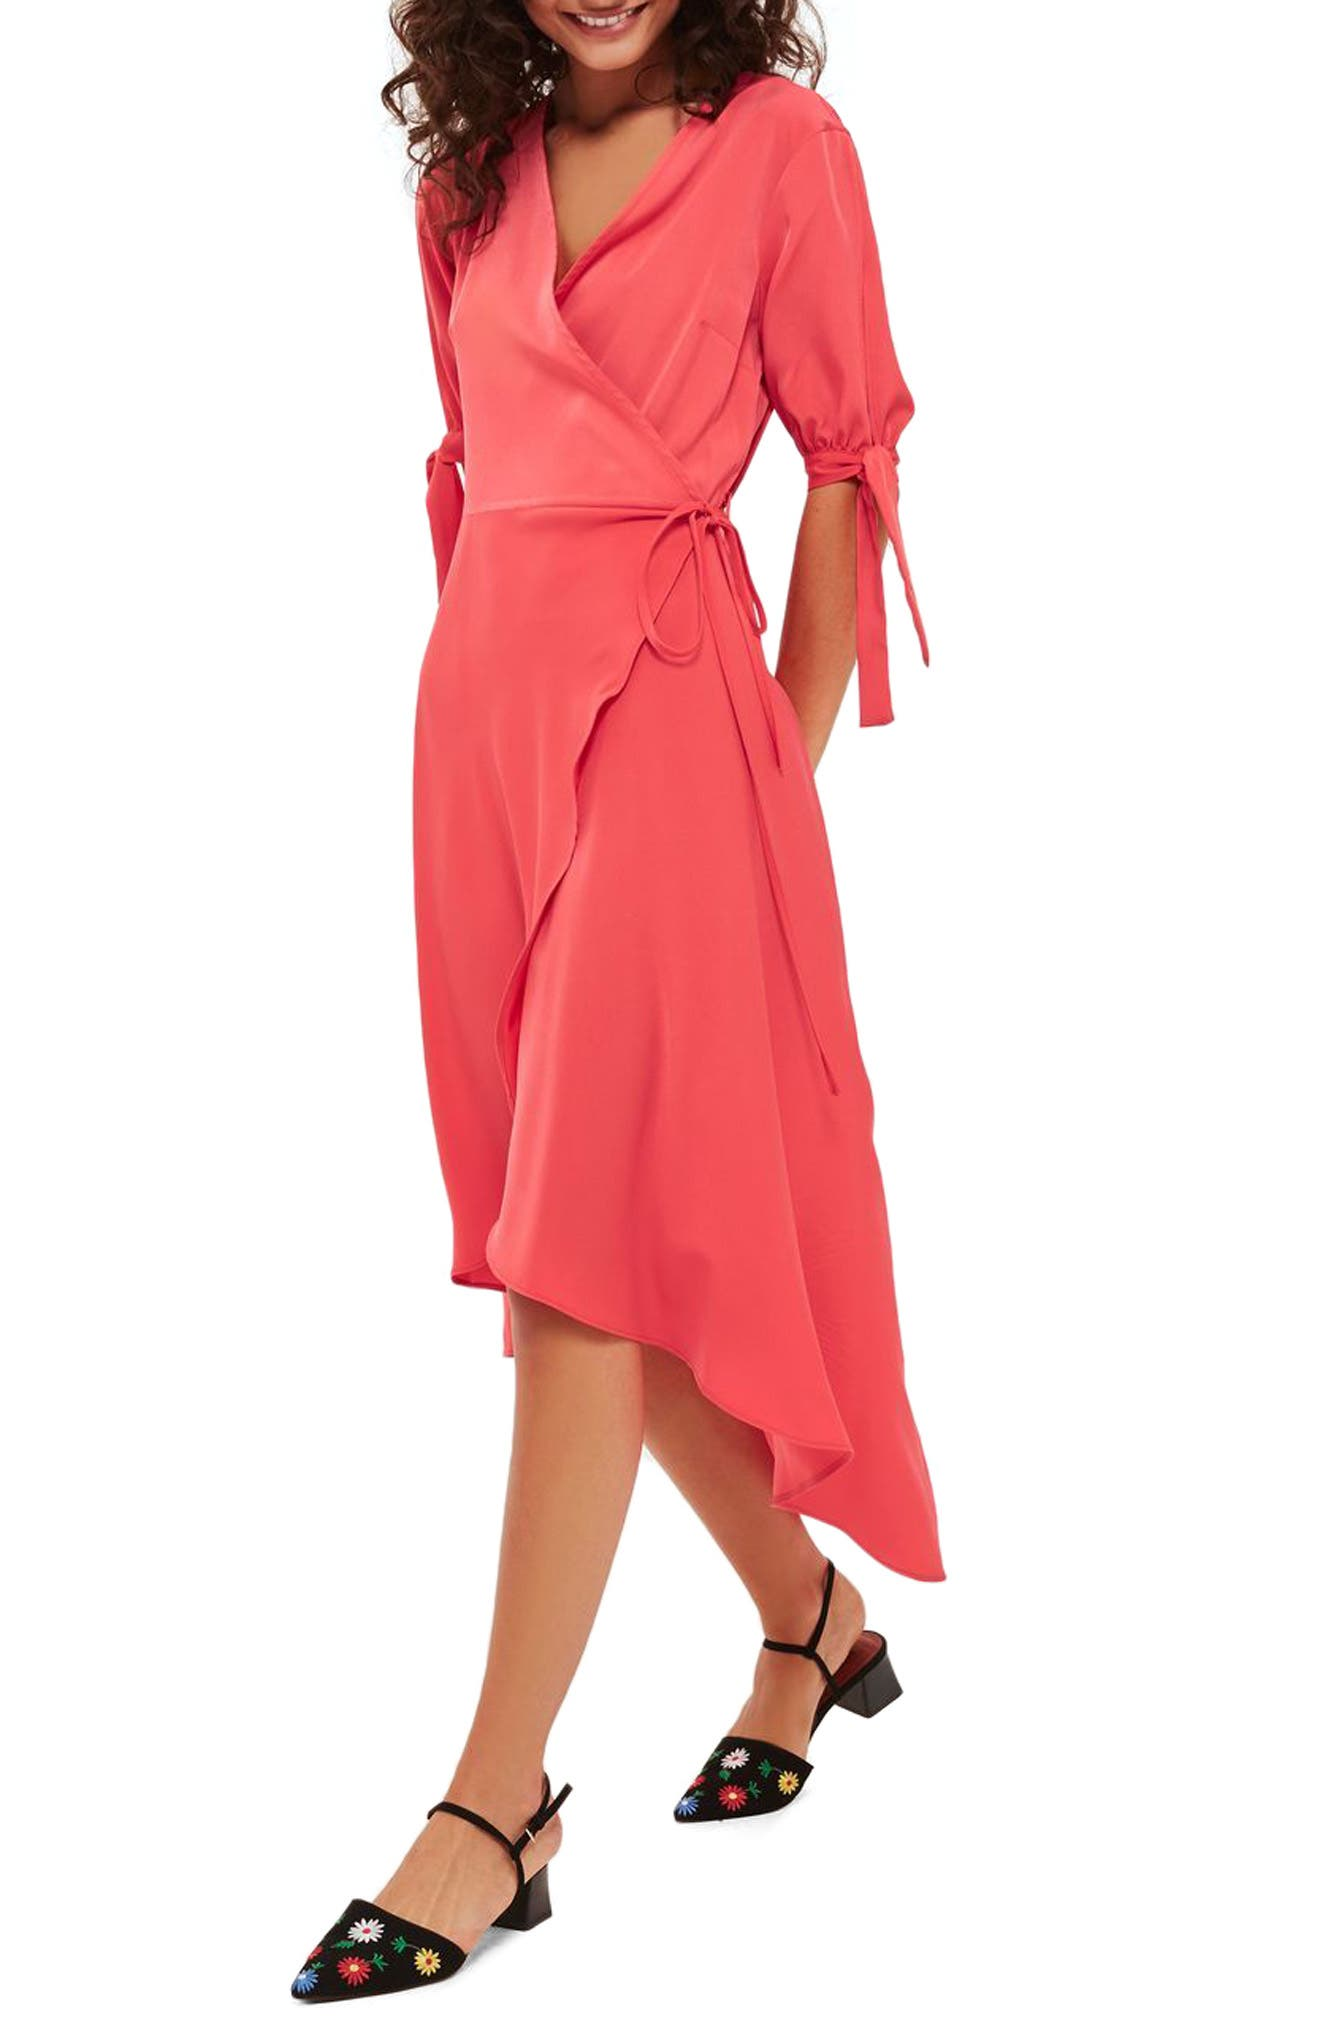 Topshop Dusty Emma Tie Sleeve Wrap Dress